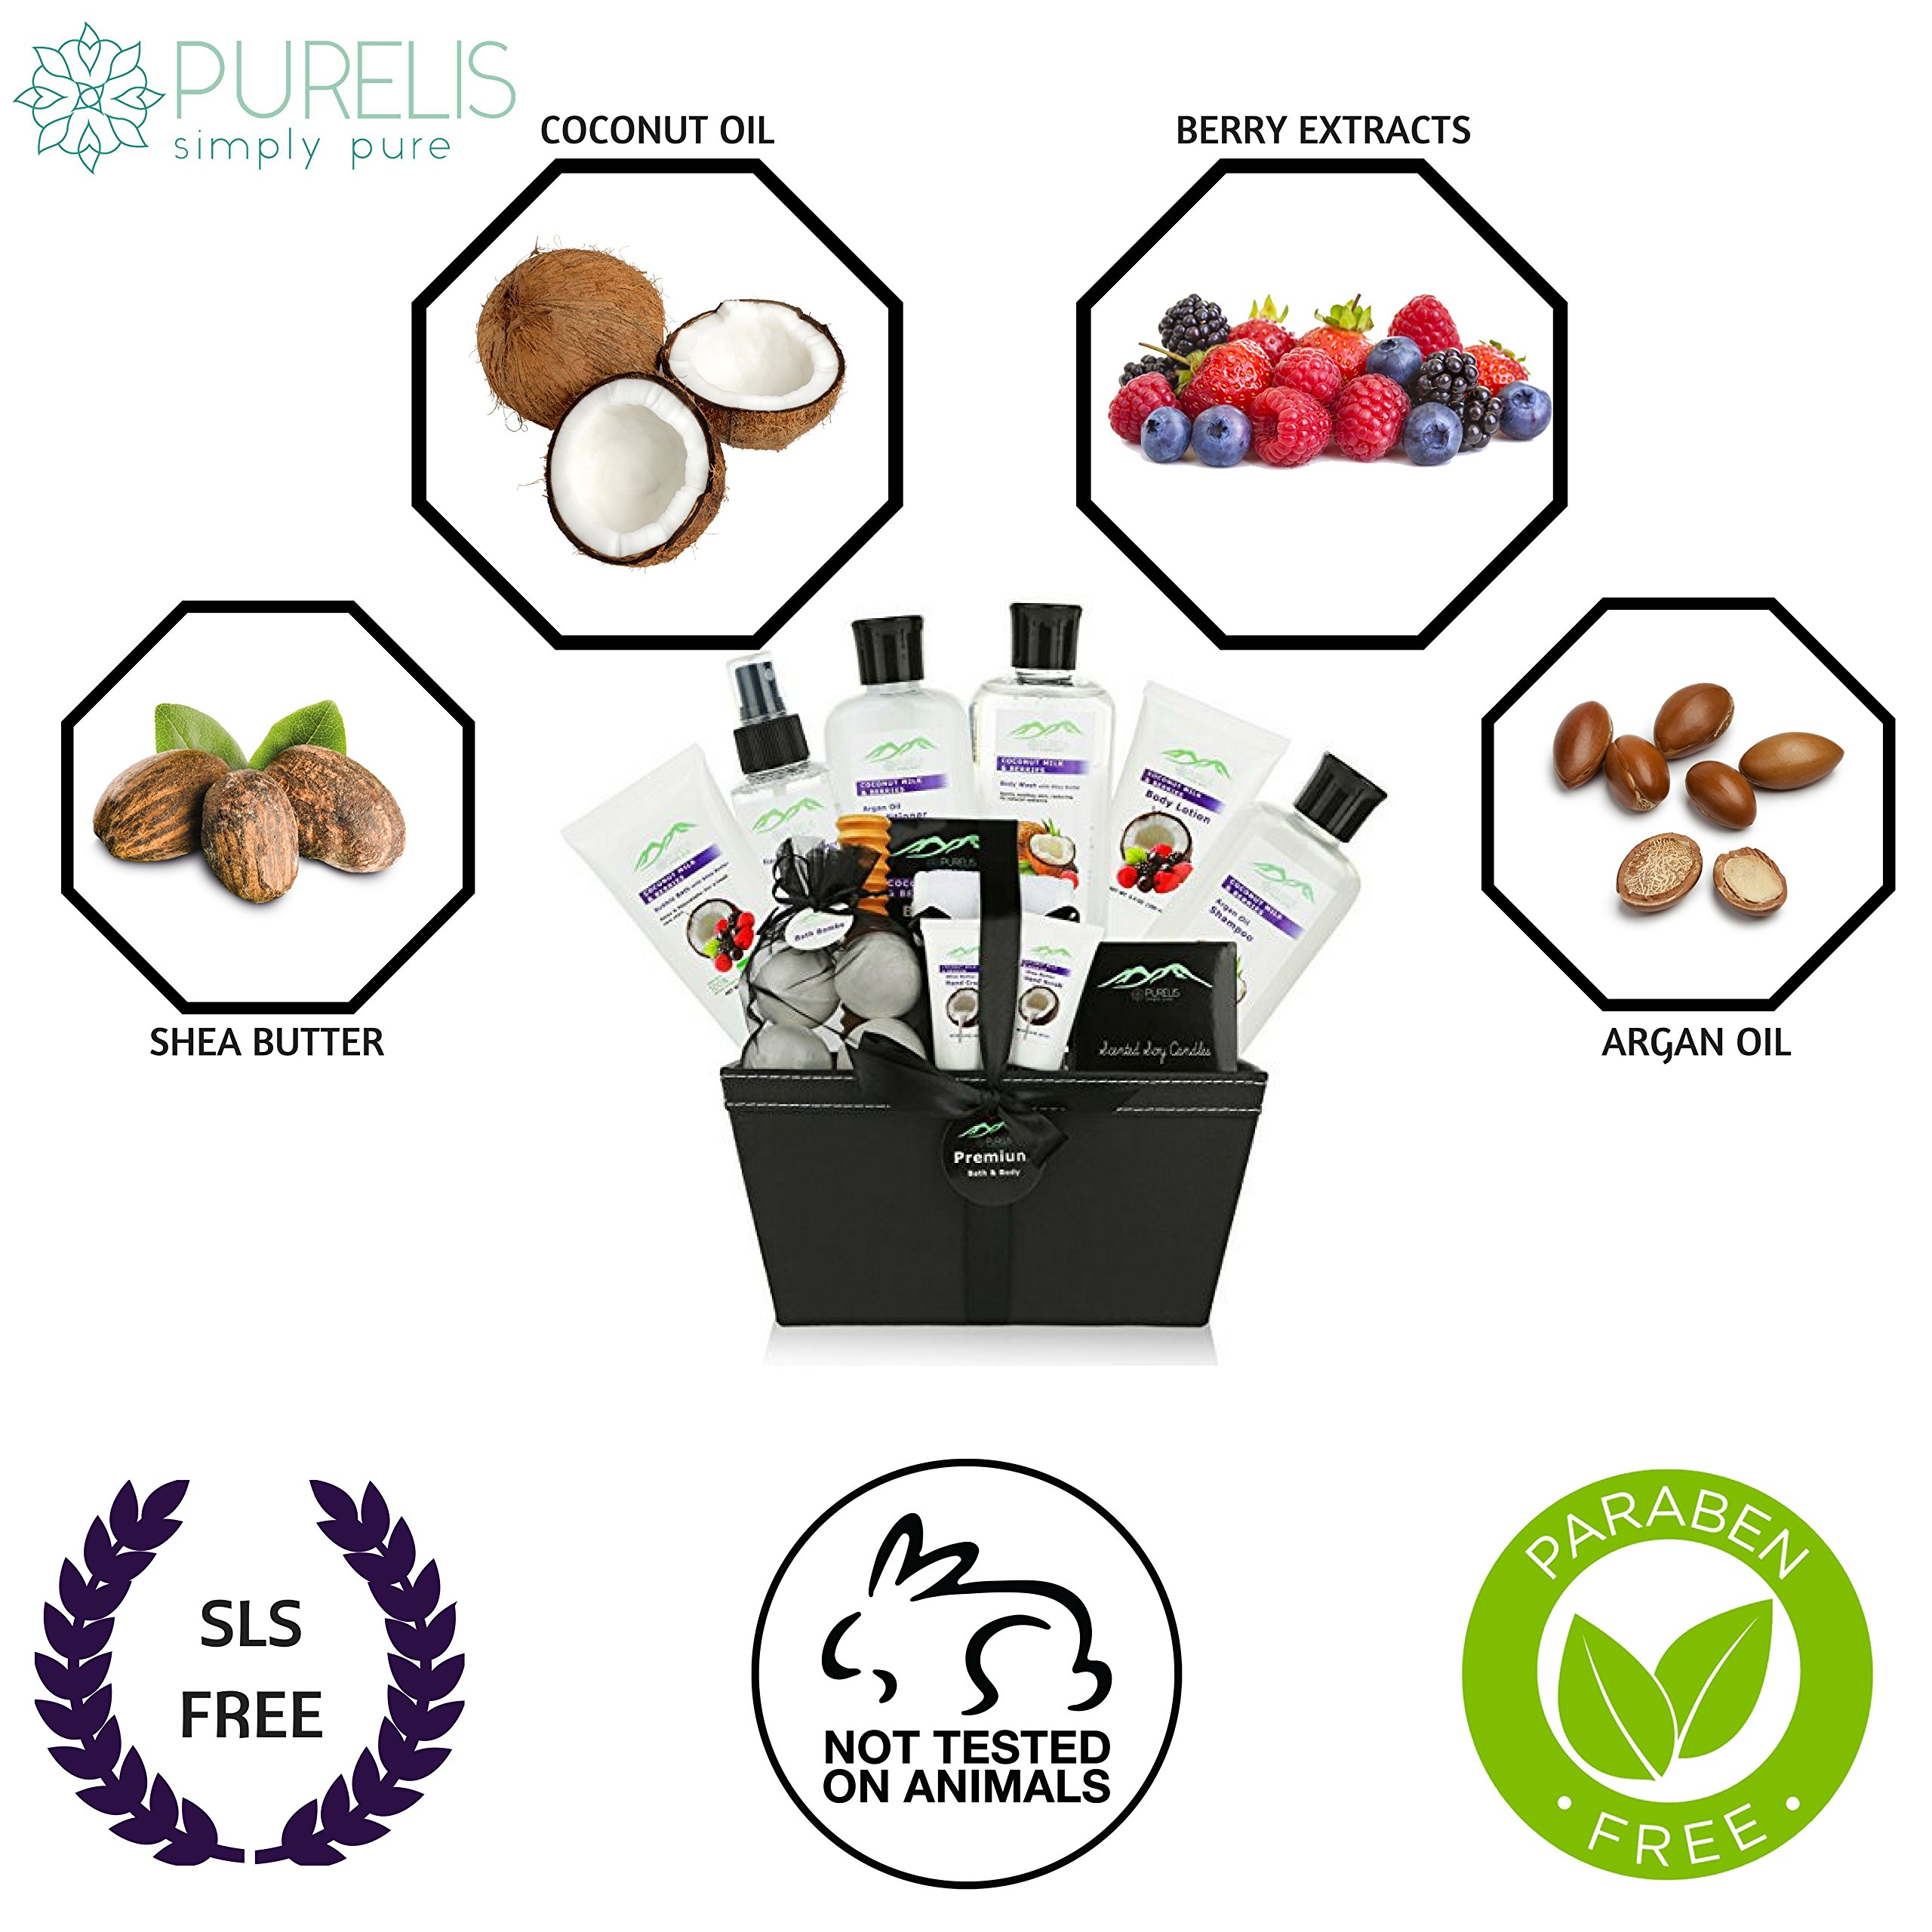 Premium Deluxe Bath & Body Gift Baskets. 18 PC Large Spa Basket for Birthday Gifts Holiday Gift etc. #1 Spa Gift Basket for Women, Teens! Women Gift Basket Ideal for Mothers Day Gift for Mom! by Purelis (Image #5)